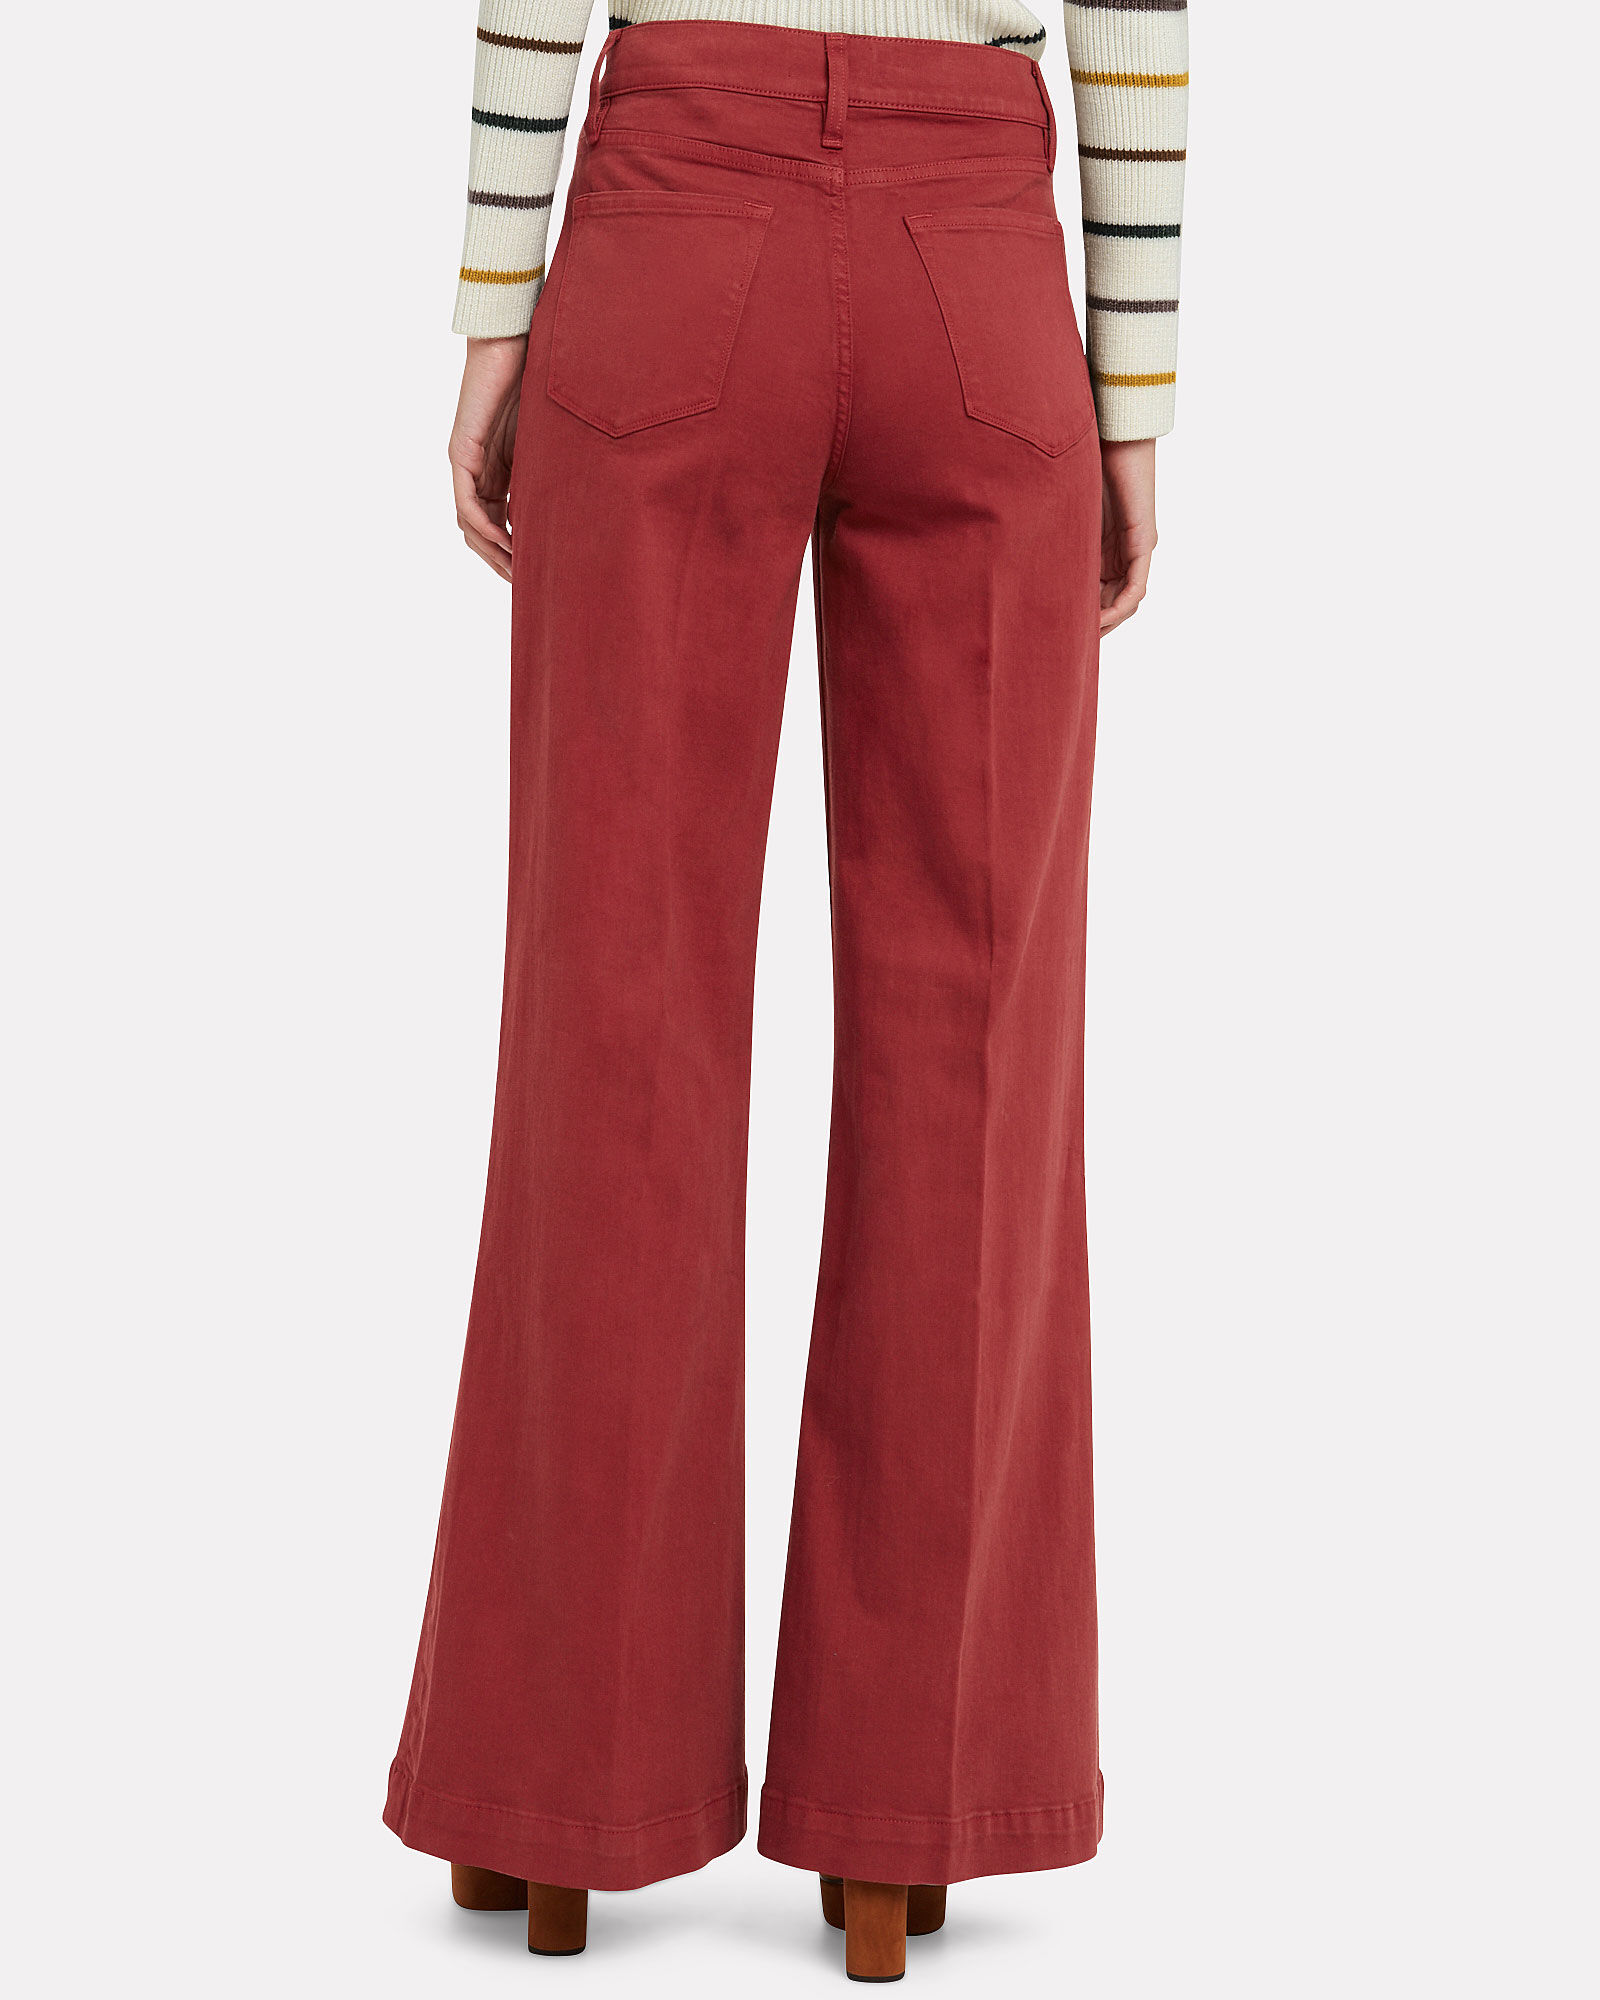 Le Palazzo Wide Leg Jeans, RED-DRK, hi-res